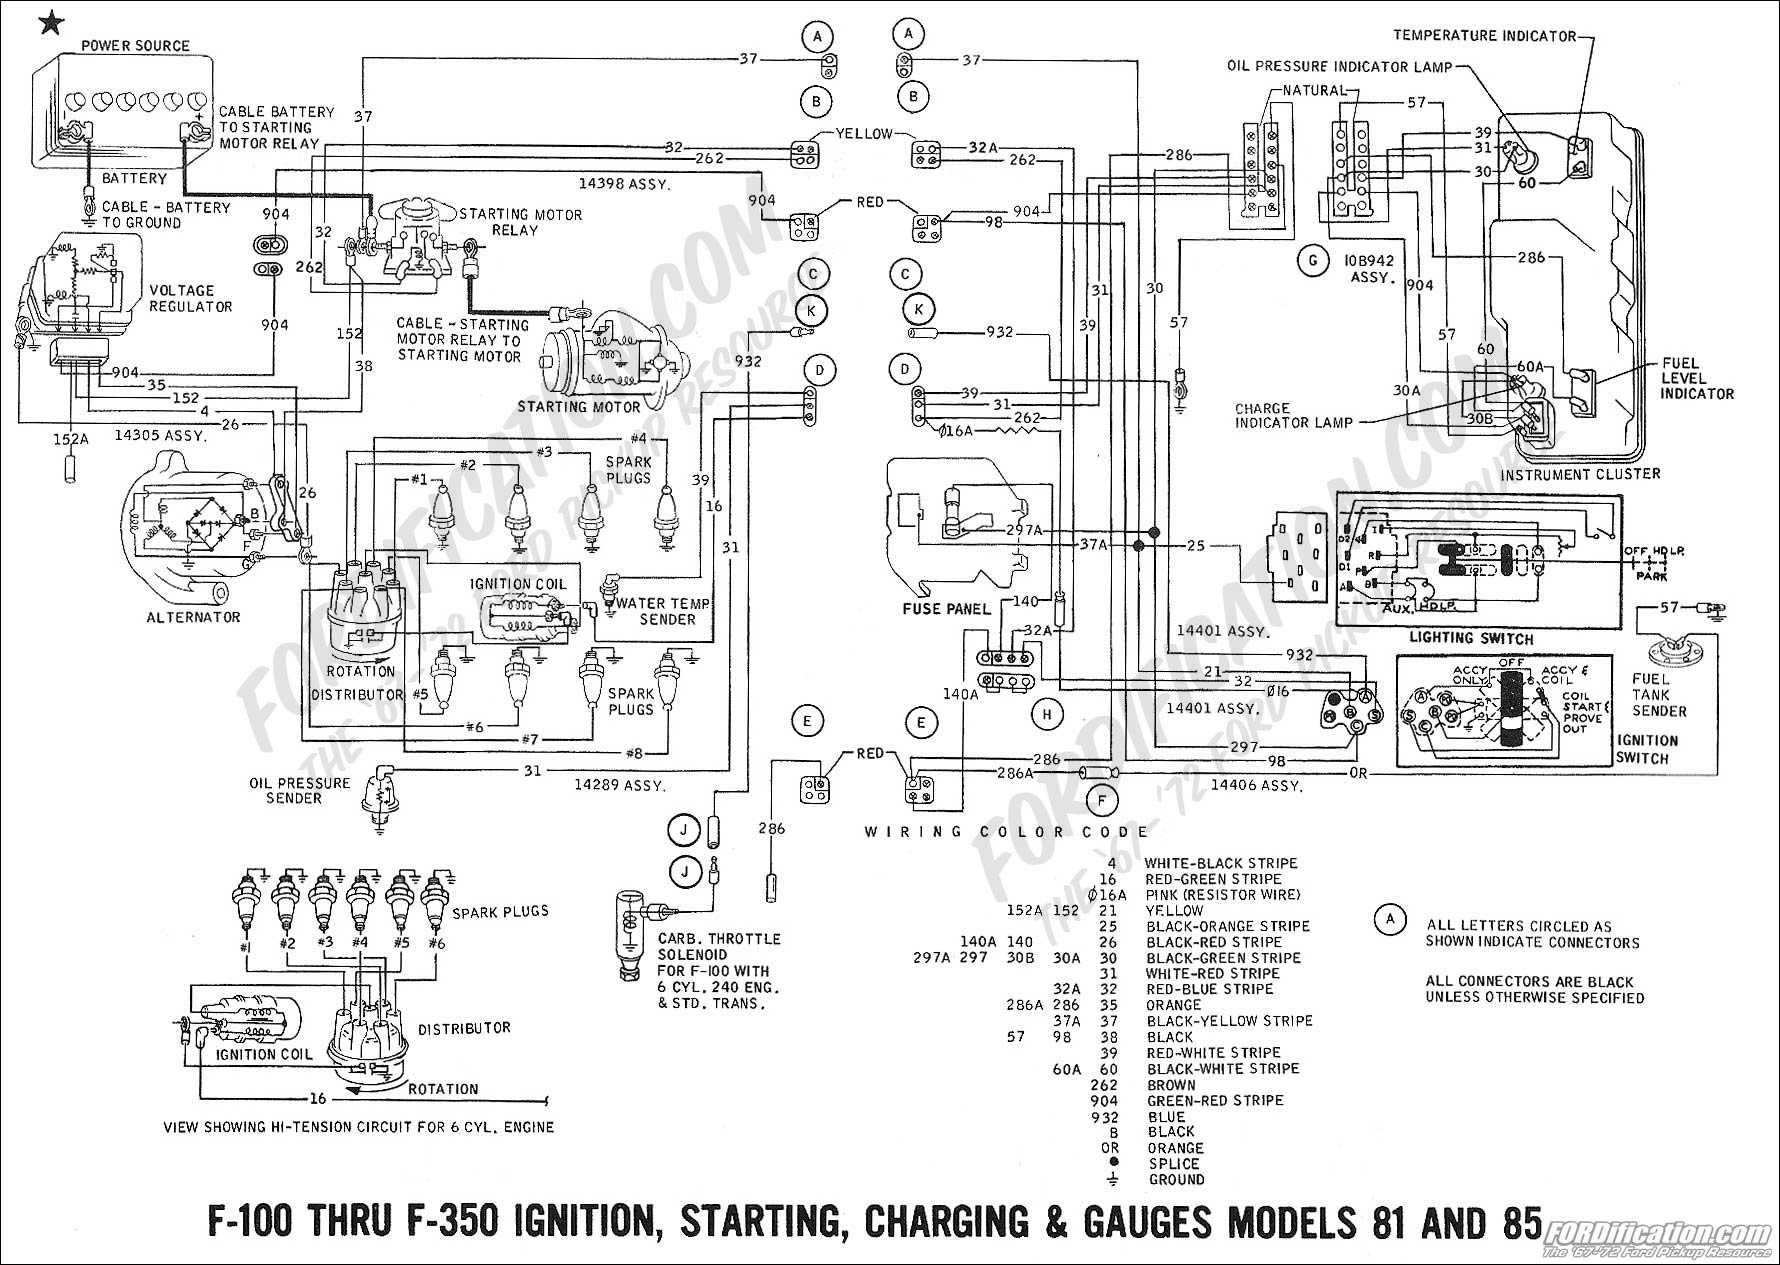 1986 ford e350 fuel wiring diagram   34 wiring diagram